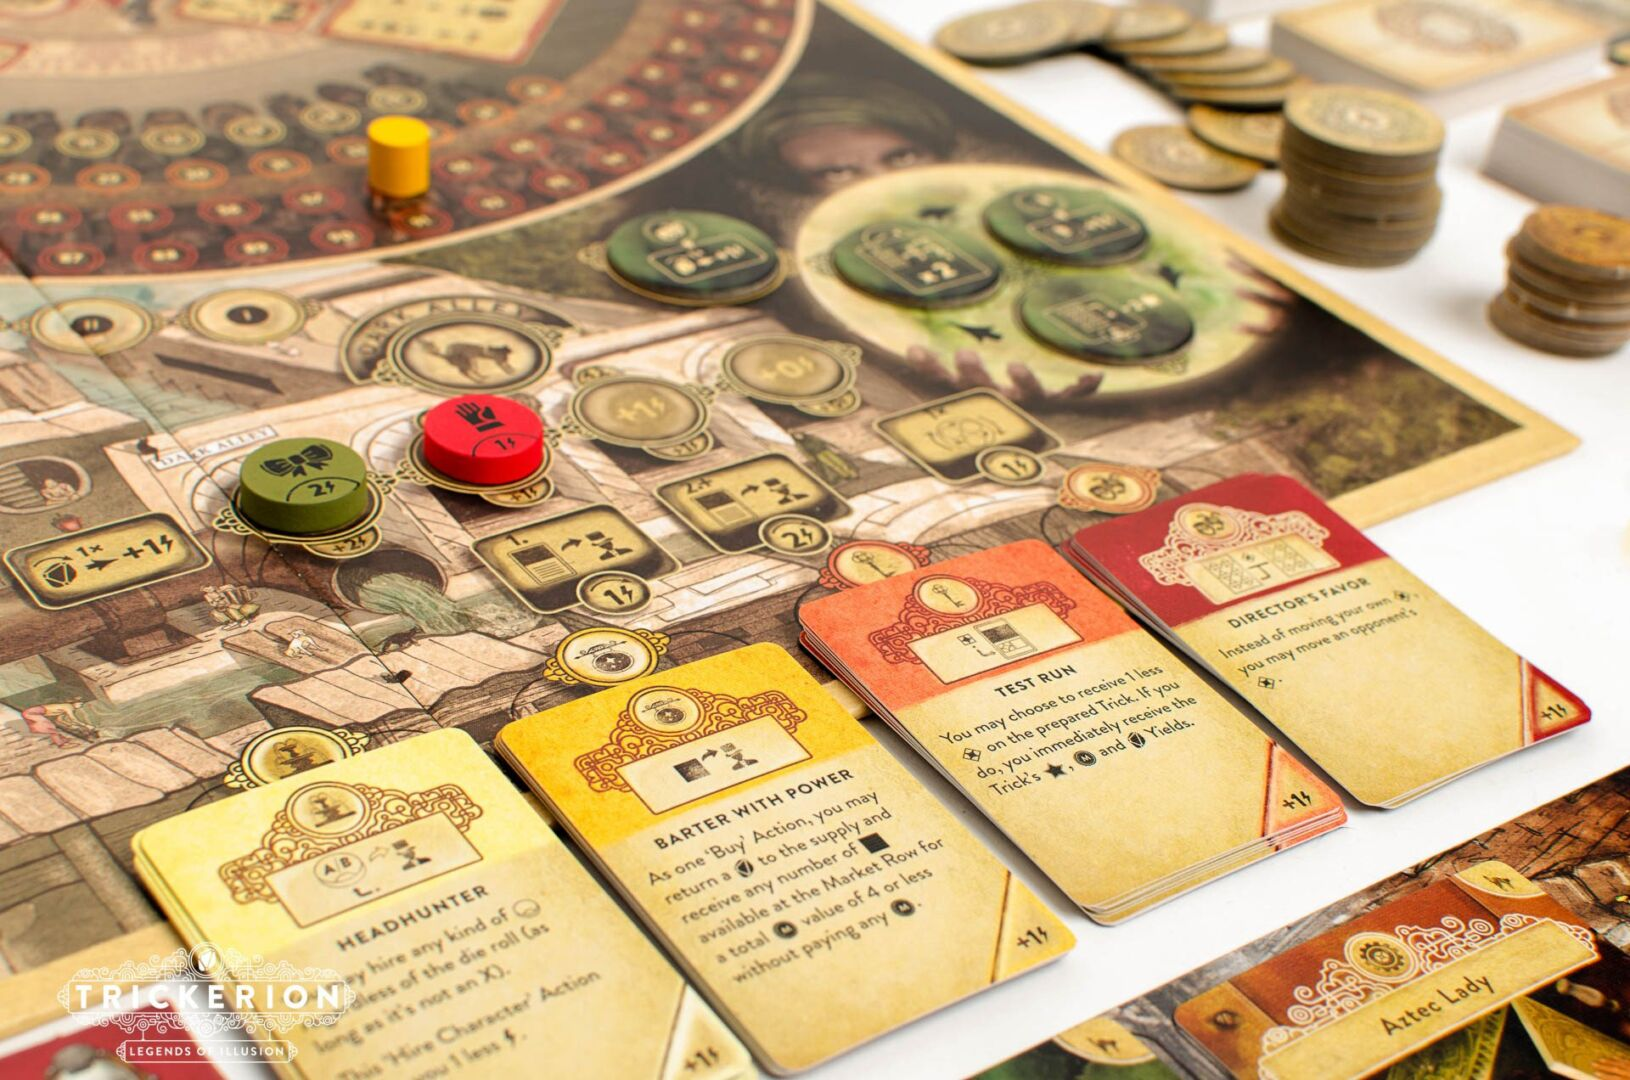 Trickerion products now available in US, CAN and EU